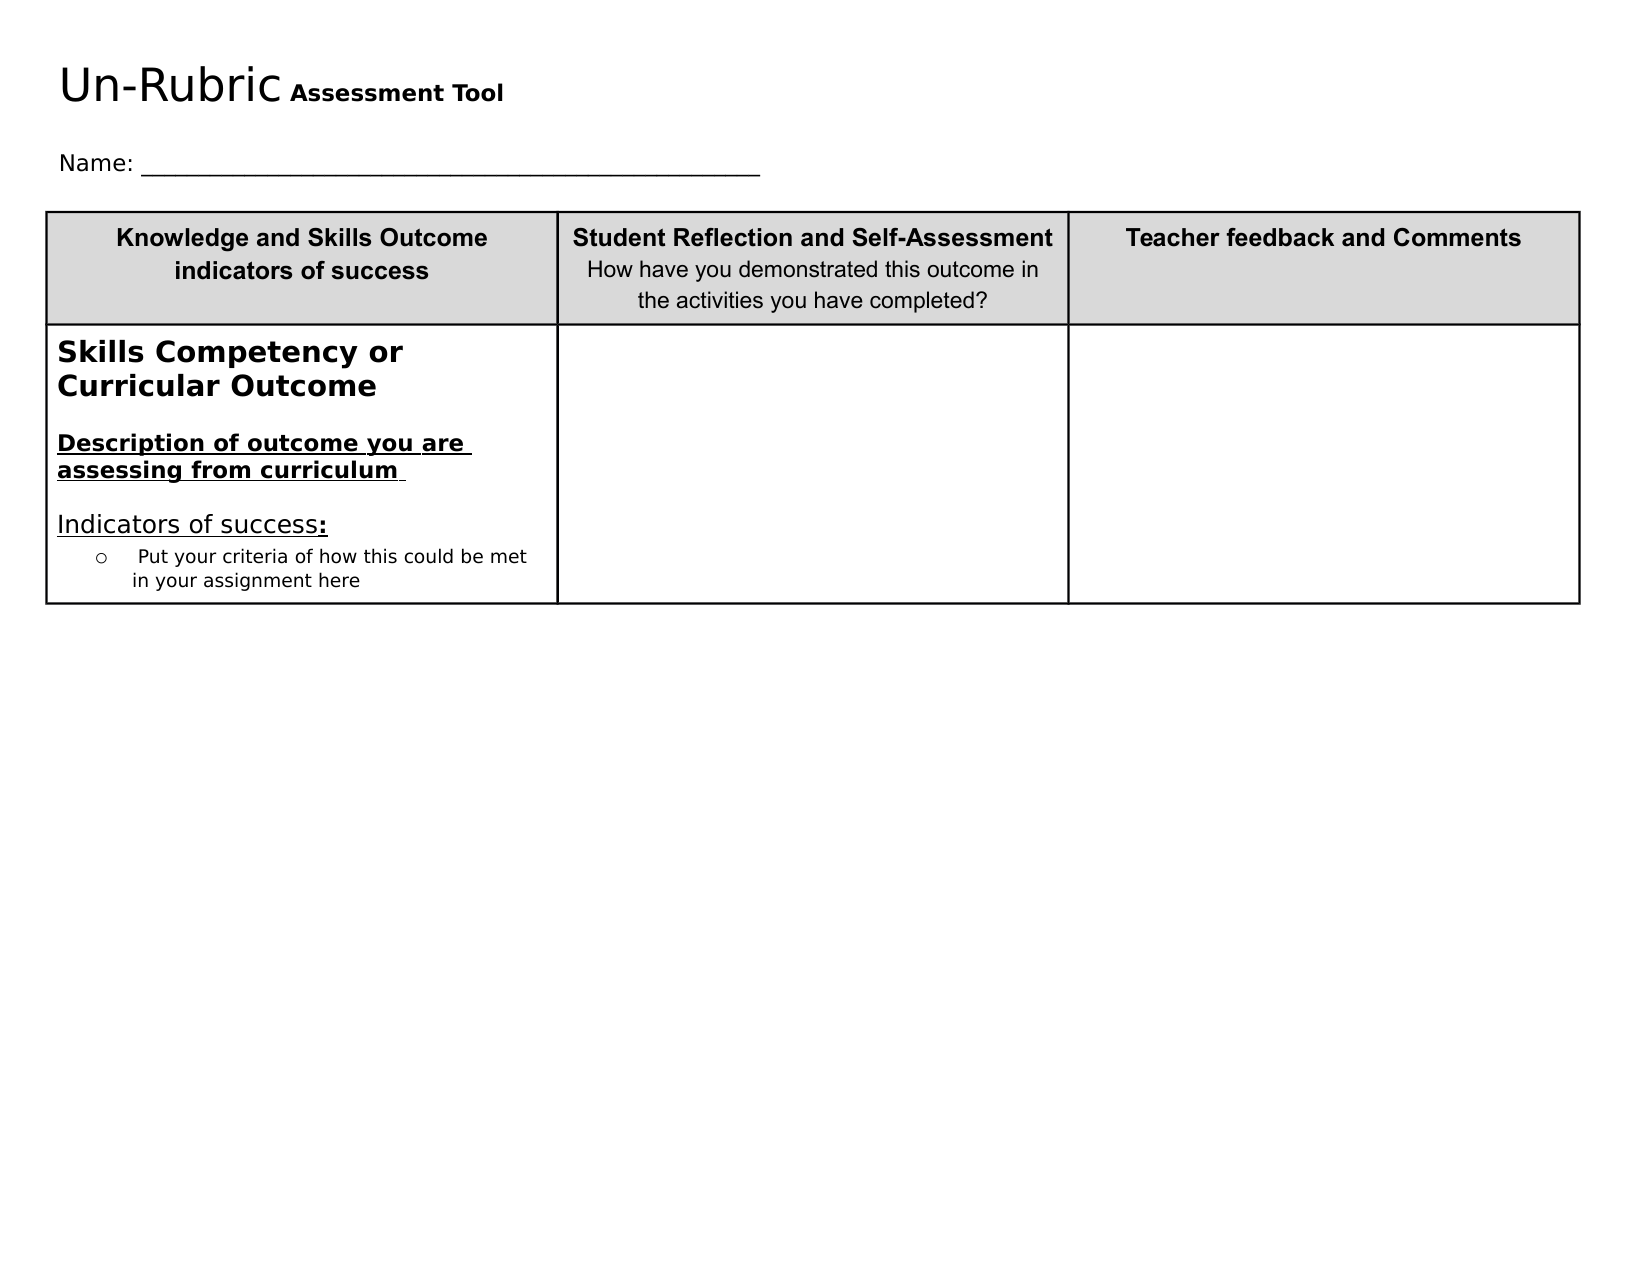 UnRubric Assessment Tool with explanation  Resource Preview